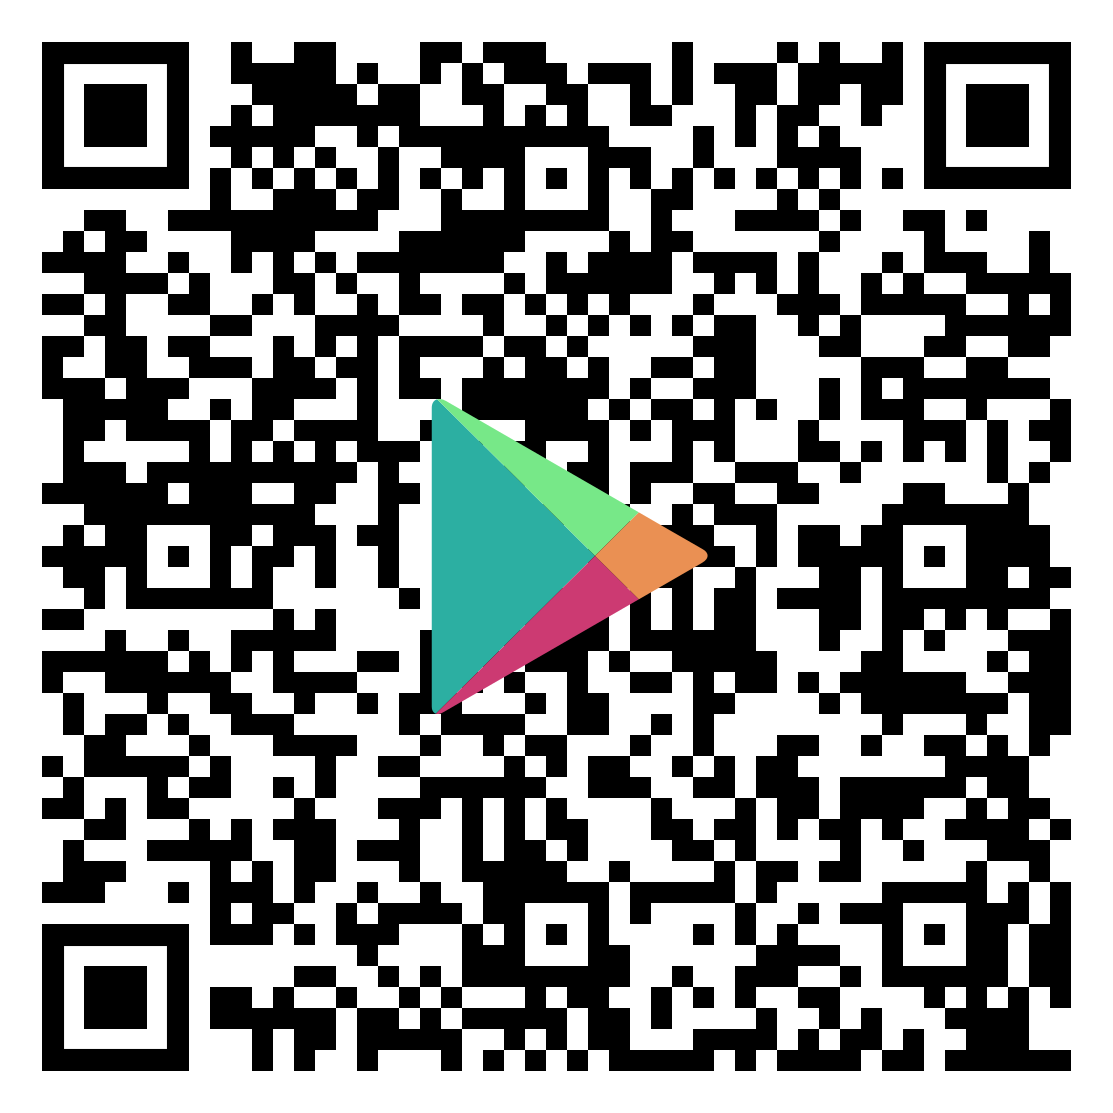 QR code for ParentSquare GooglePlay for Android